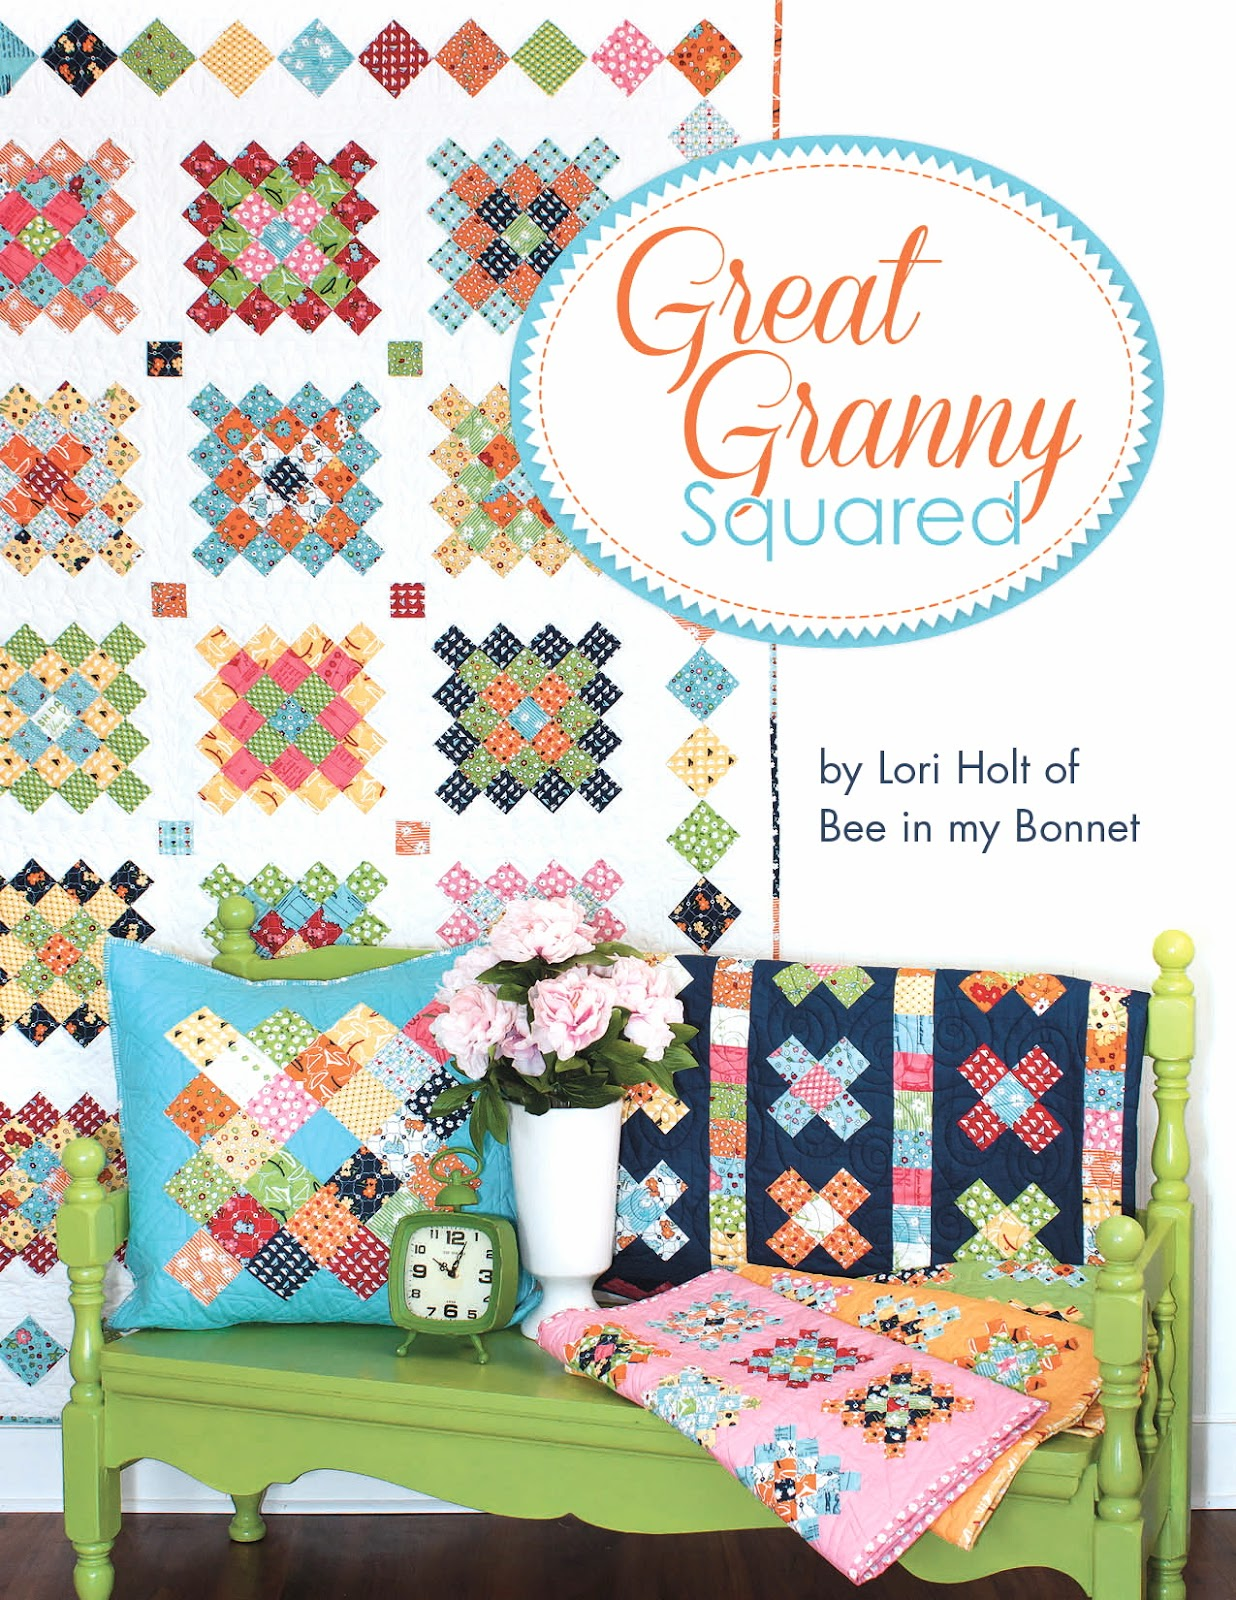 Image Giveaway! Lori Holt and Great Granny Squared